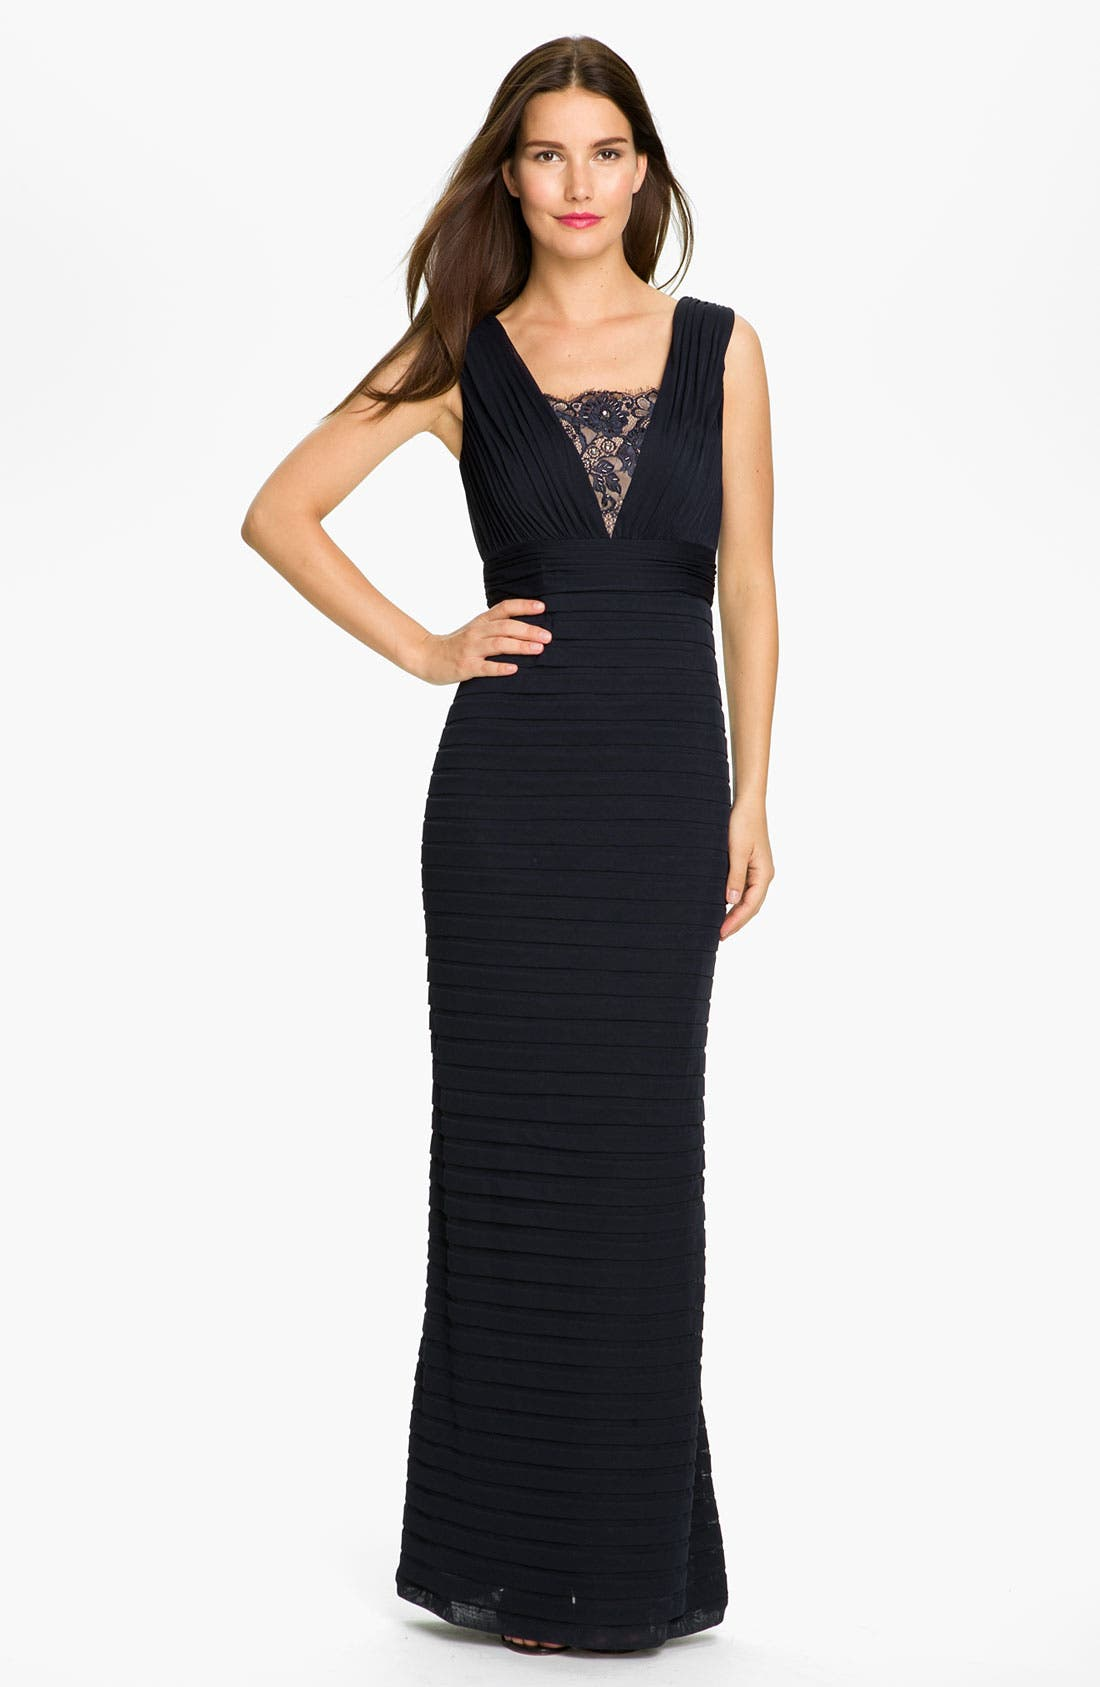 Main Image - Adrianna Papell Pleated Lace Inset Mesh Gown (Petite)